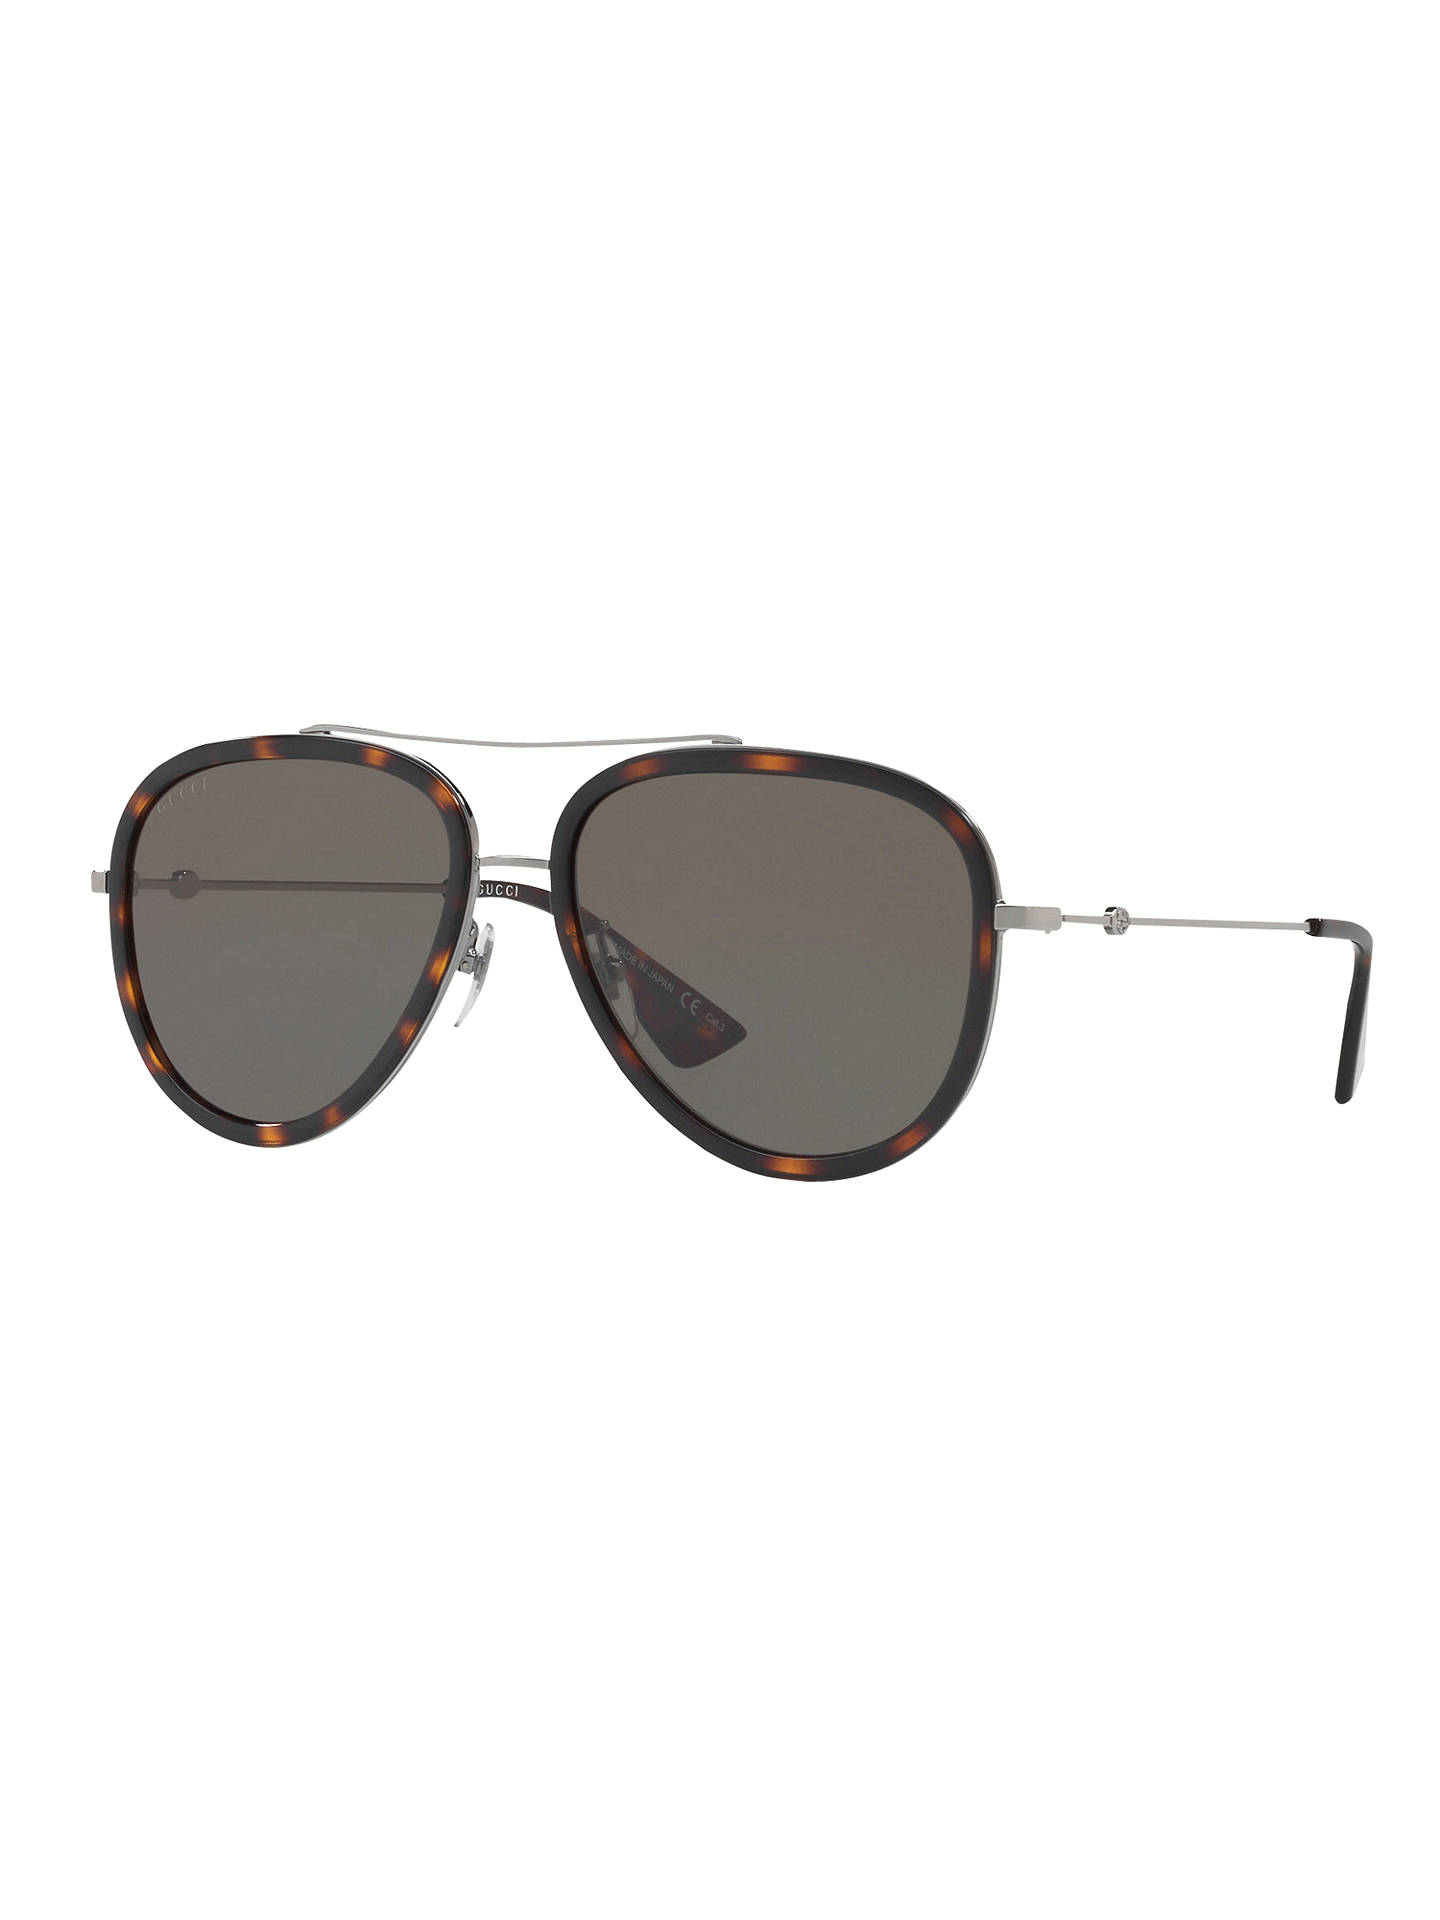 a9fef2c7f Buy Gucci GG0062S Aviator Sunglasses, Dark Tortoise/Grey Online at  johnlewis.com ...